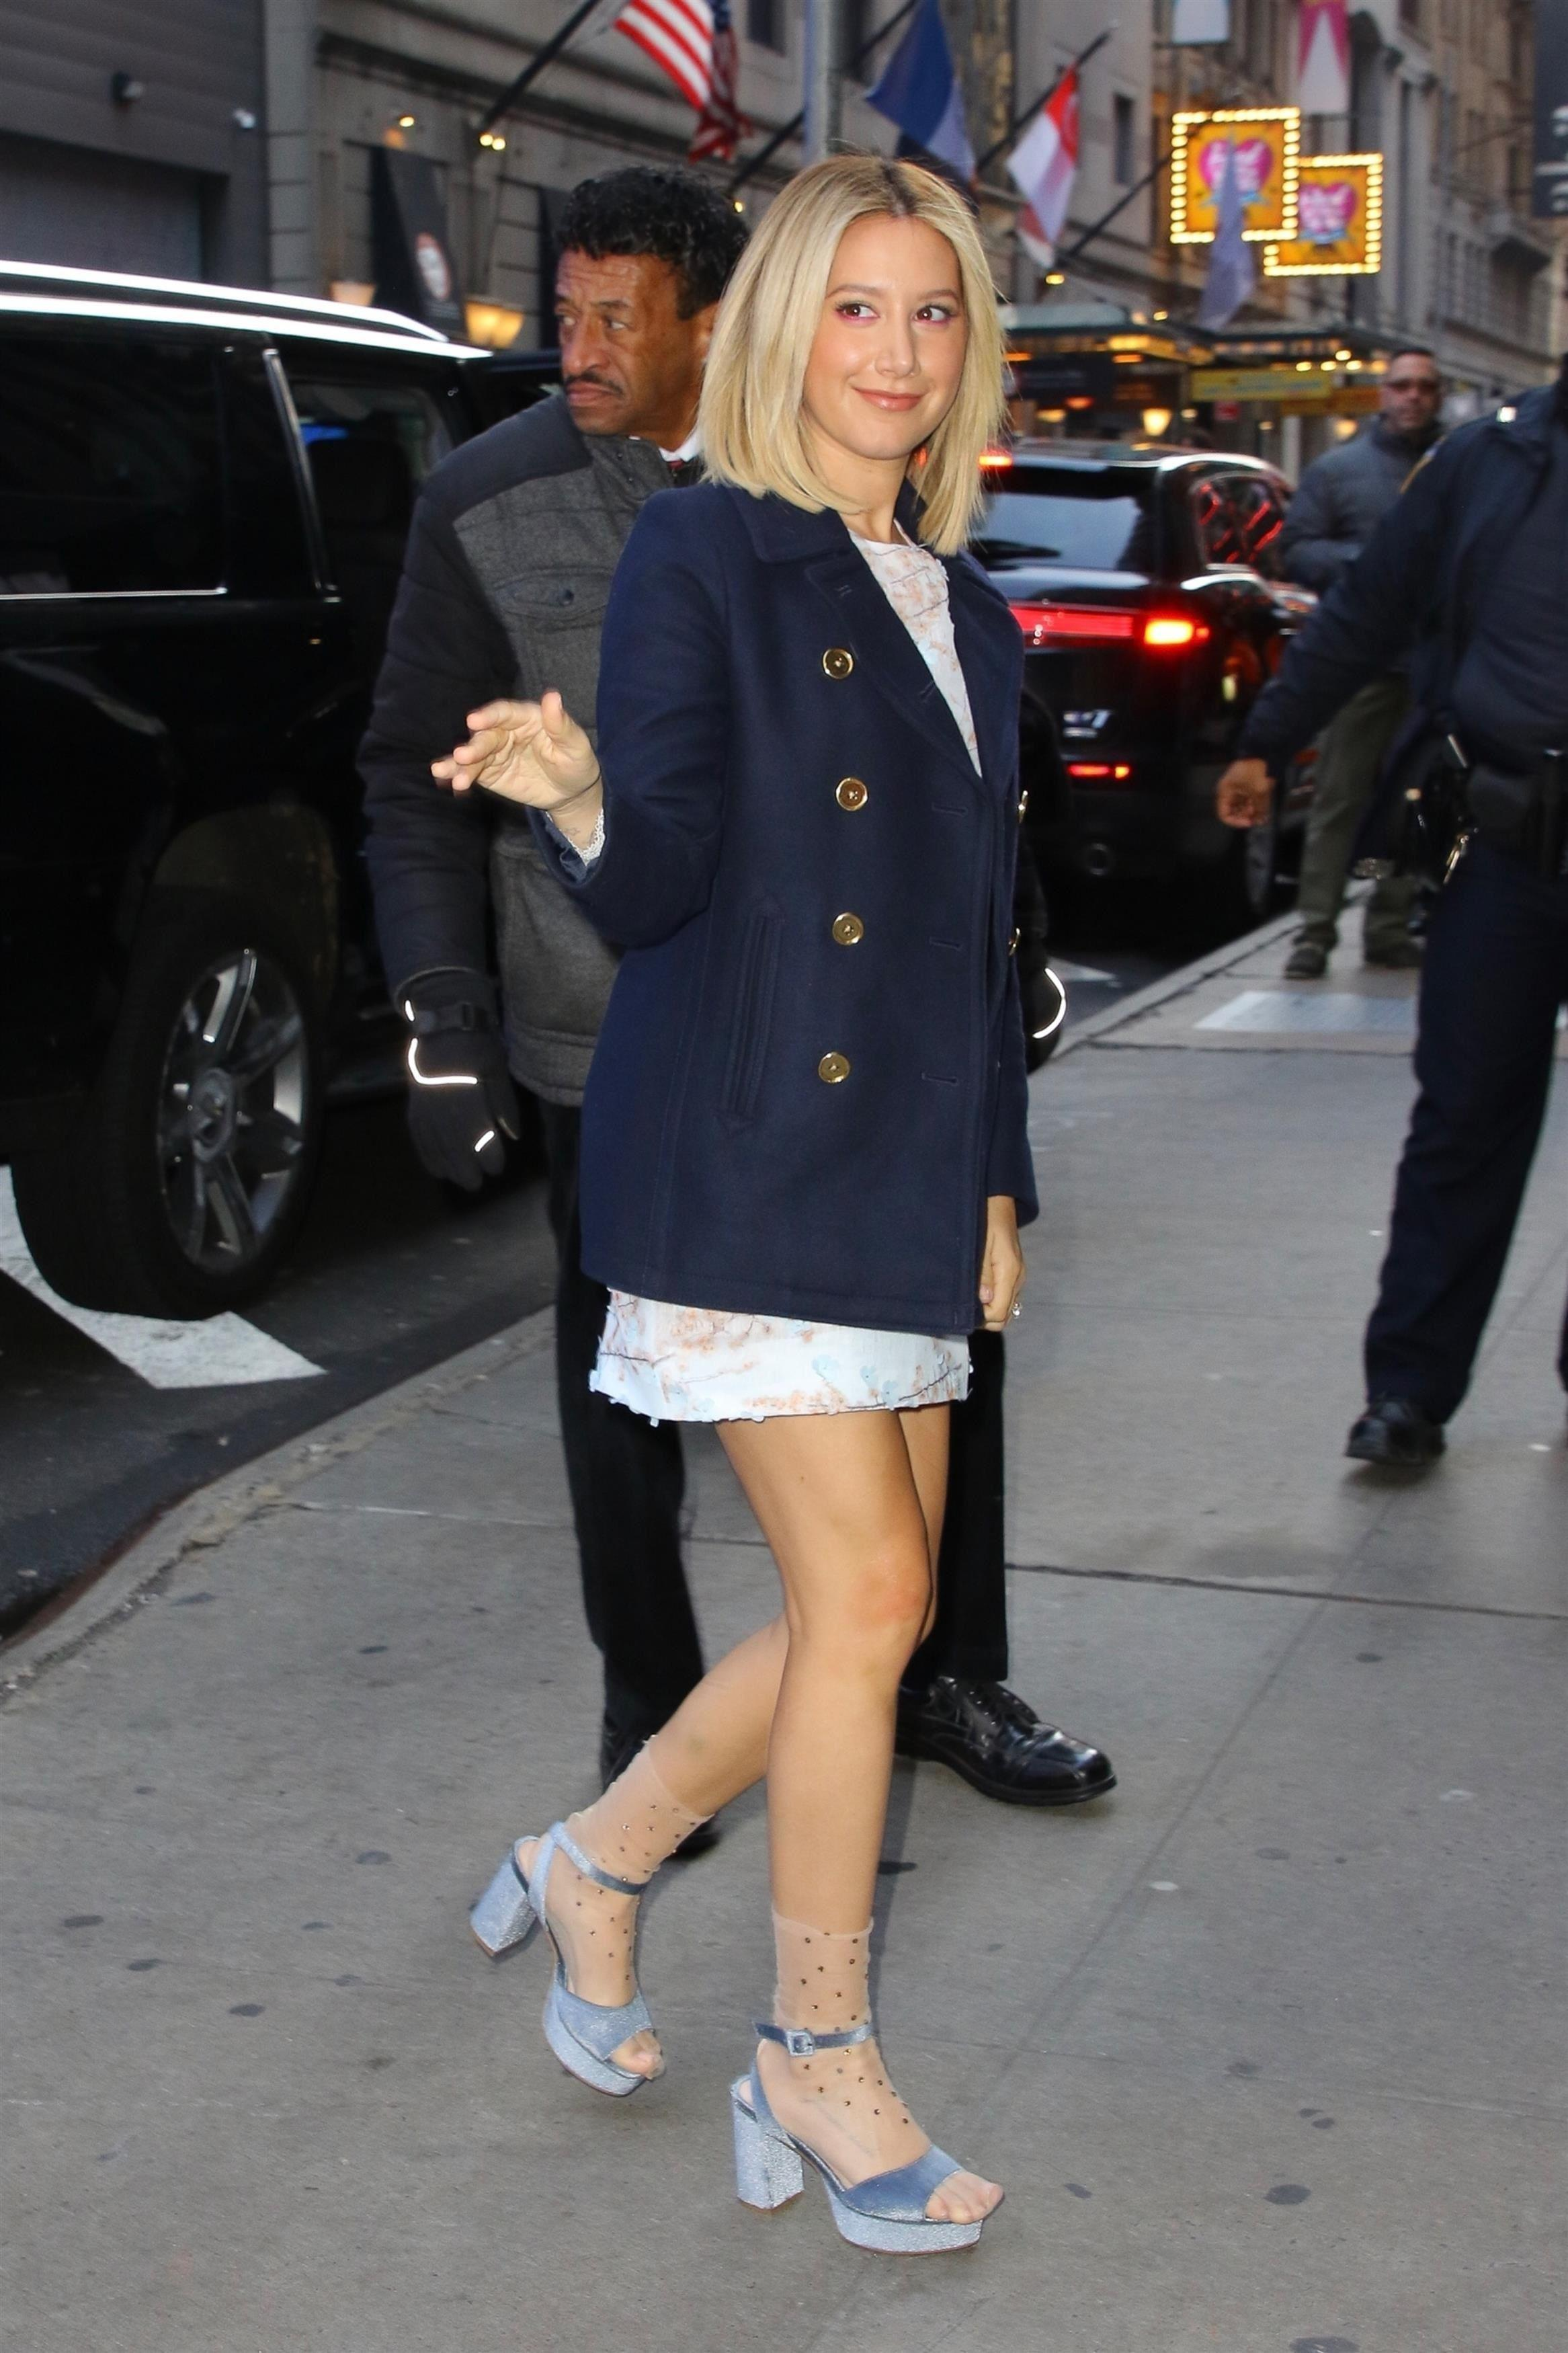 Commit ashley tisdale feet opinion